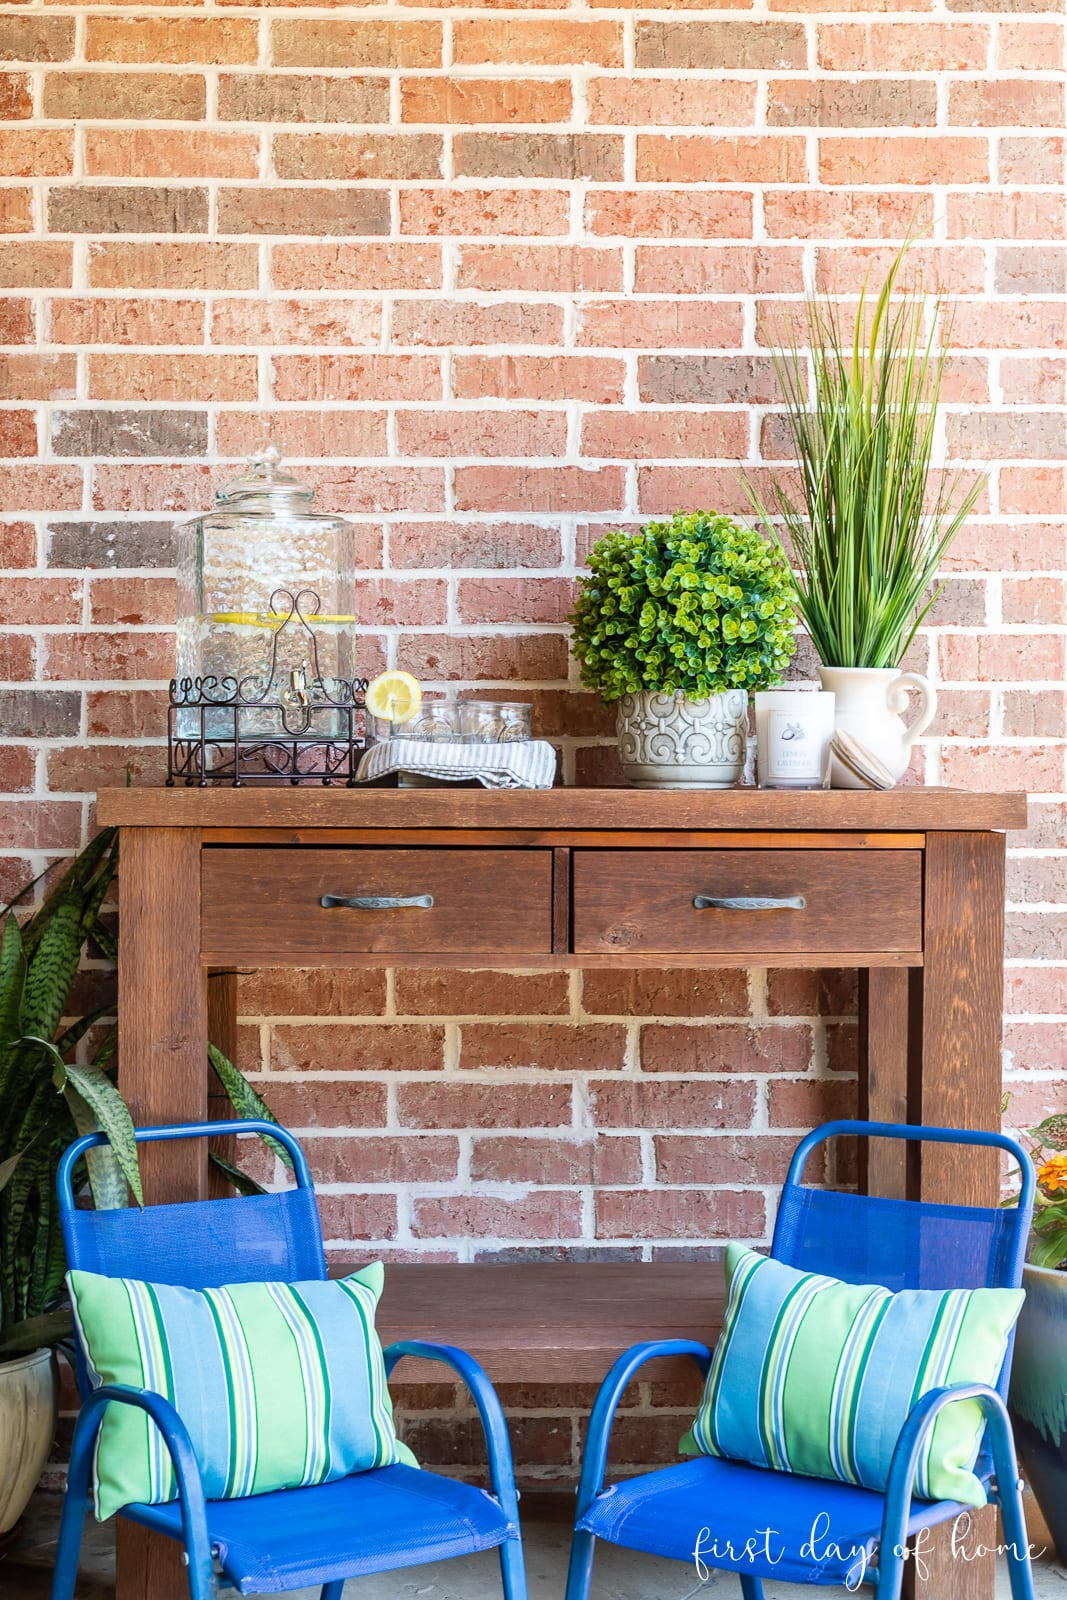 Cedar bench outdoors with greenery and lemonade serving station